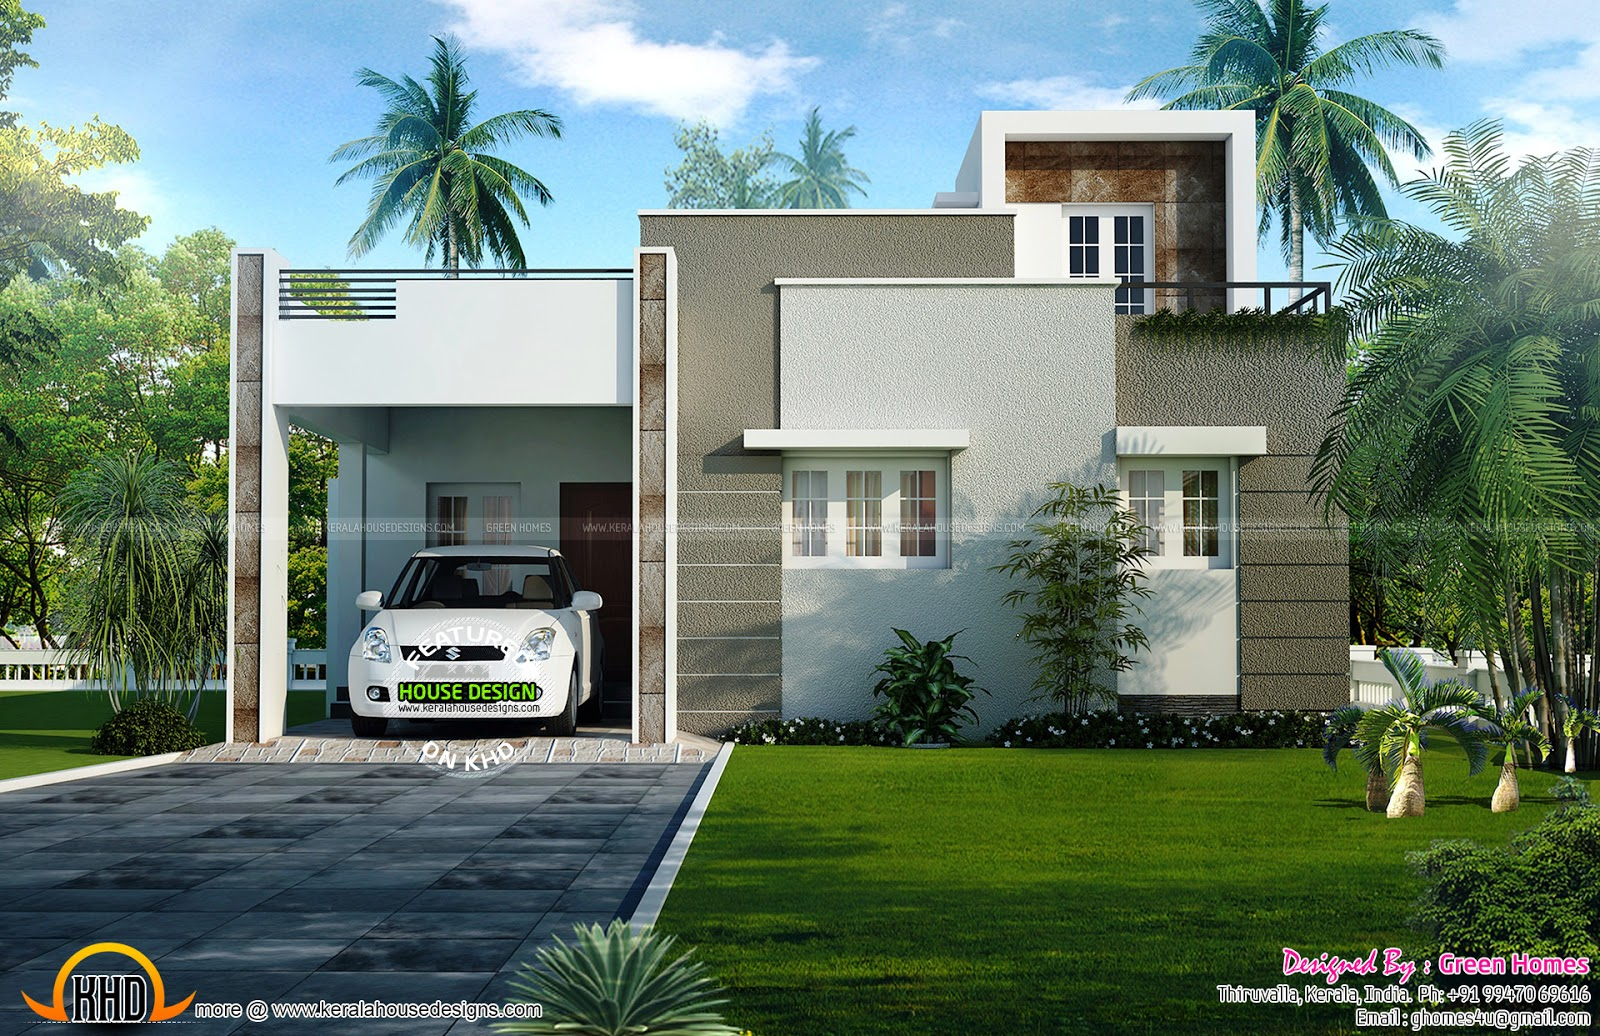 1200 sq ft house plan kerala home design and floor plans House plans indian style in 1200 sq ft